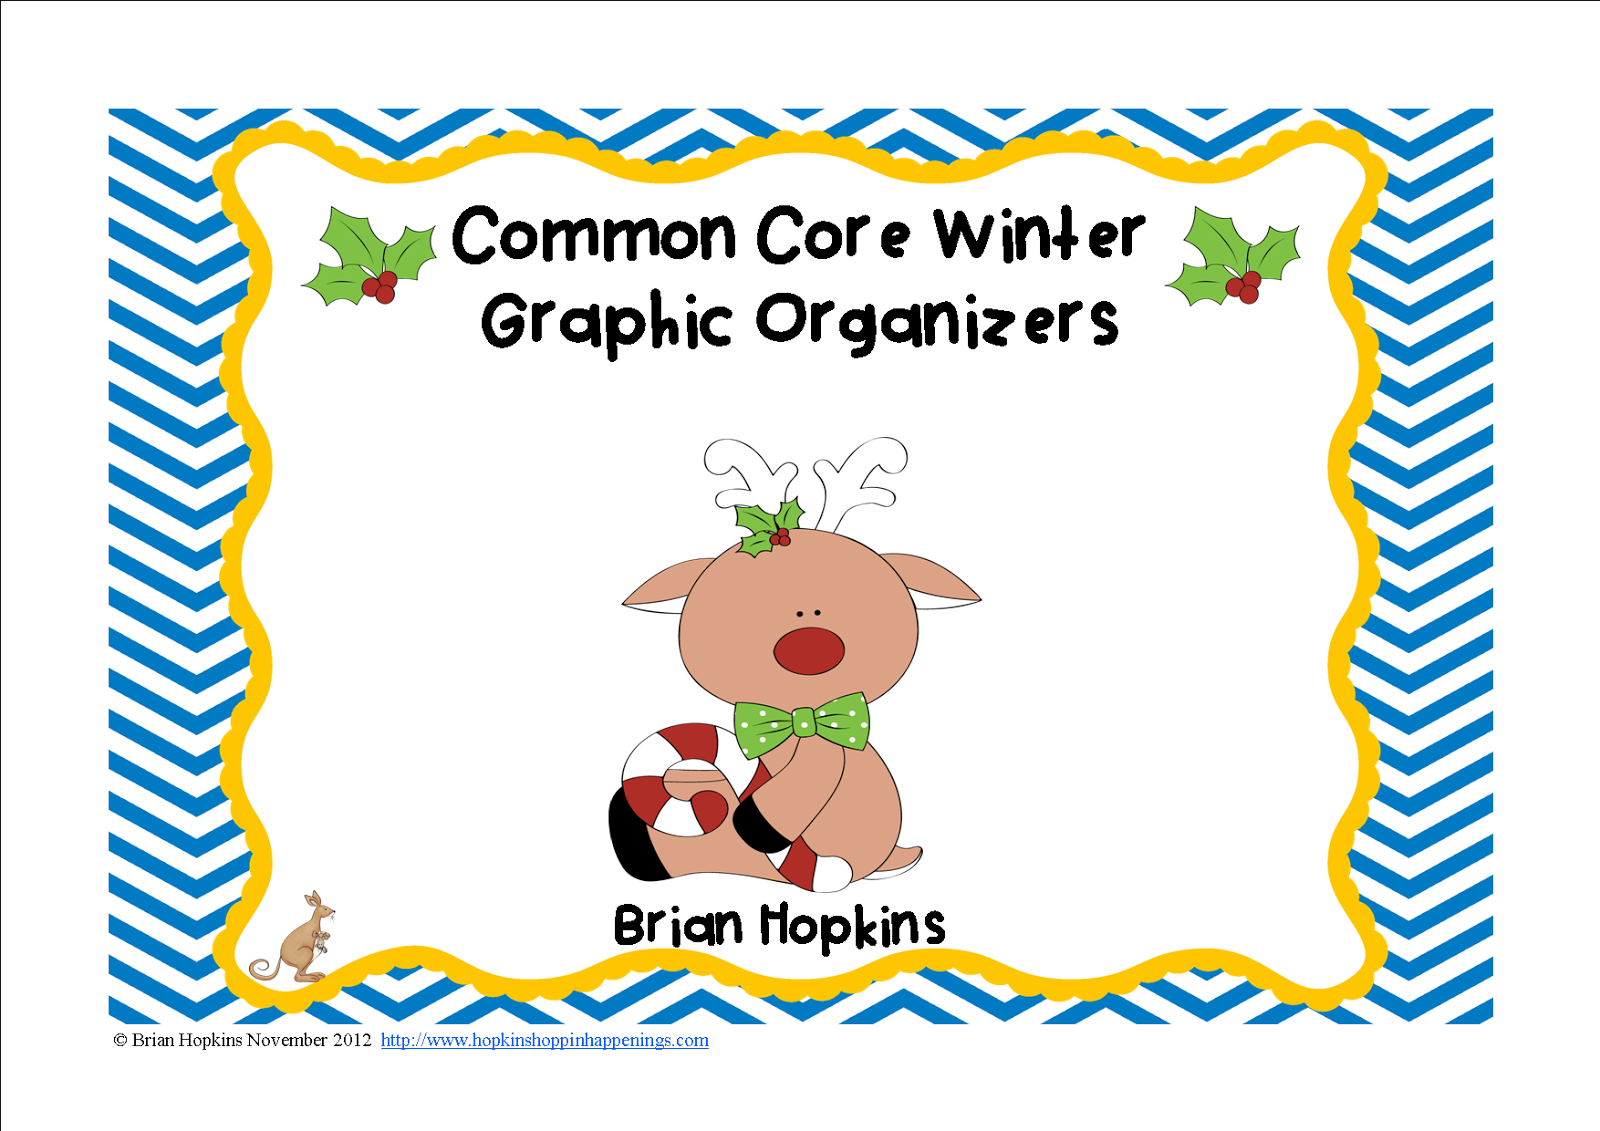 http://www.teacherspayteachers.com/Product/Free-Common-Core-Winter-Graphic-Organizers-419121